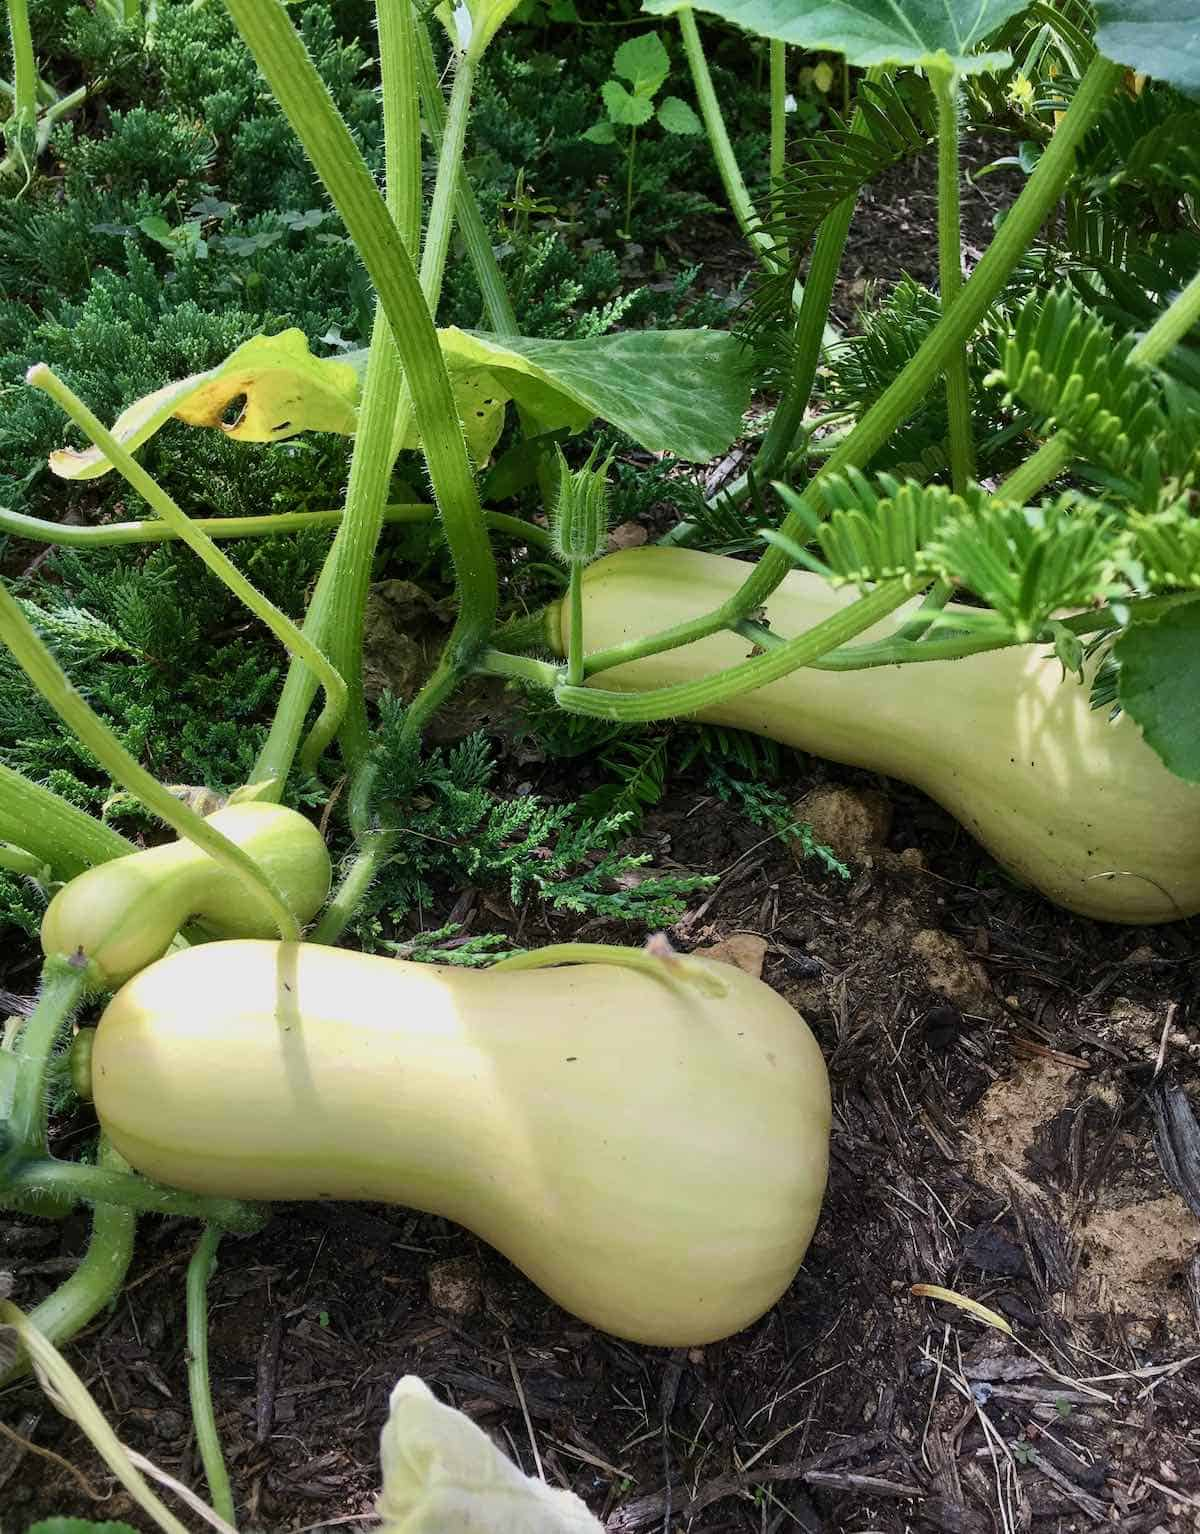 butternut squash growing in garden